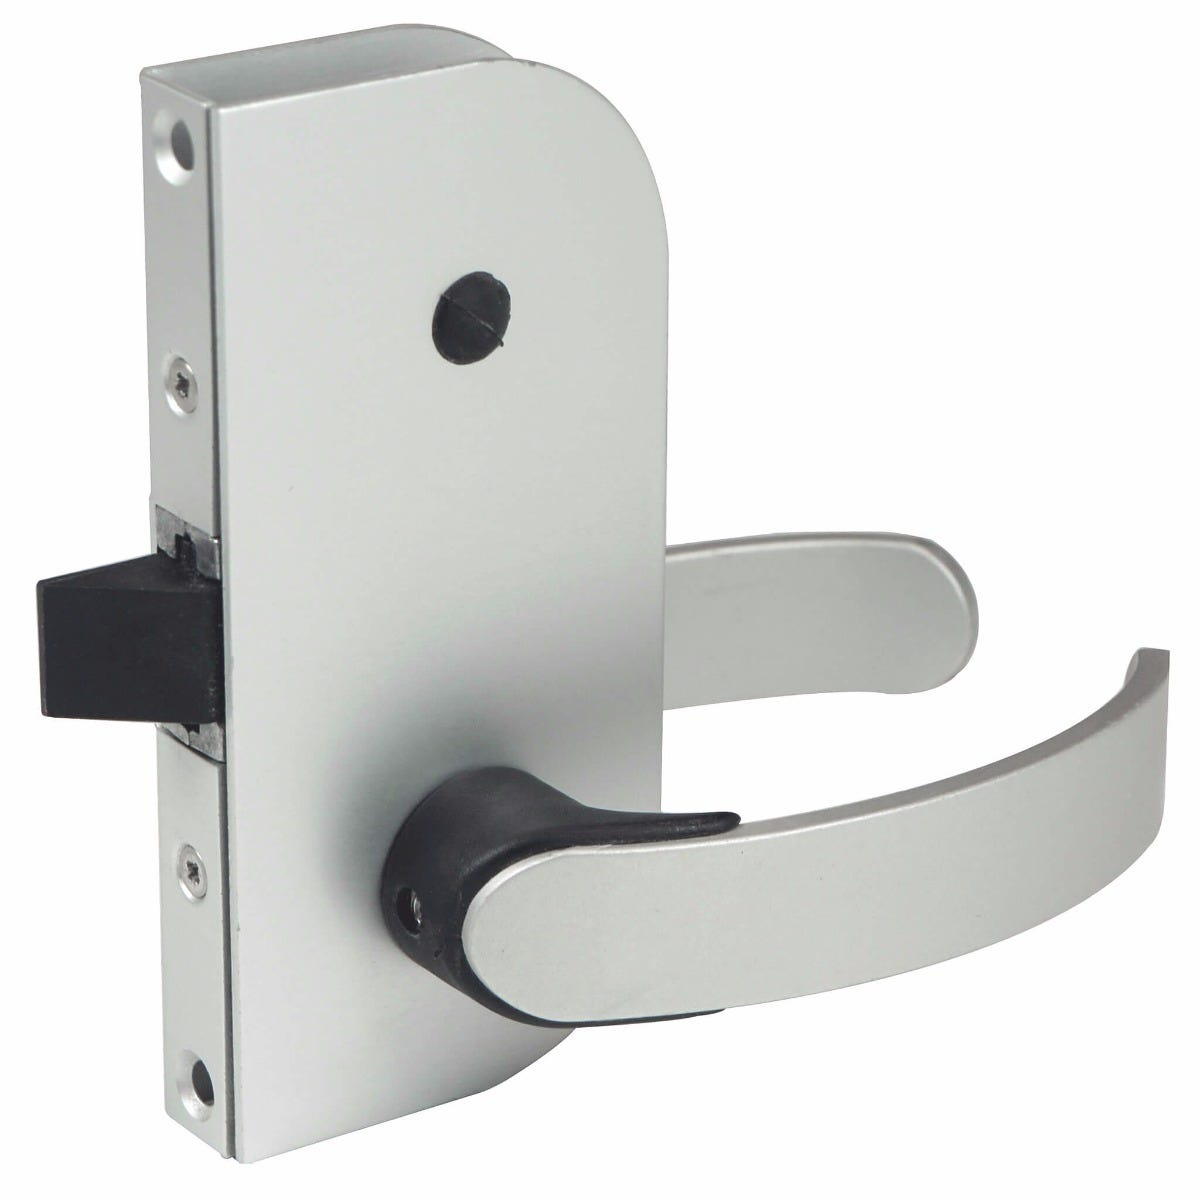 friend a p email latch door for entry rv southco xx mobella photo boat latches sliding doors flush htm and marine larger mf short